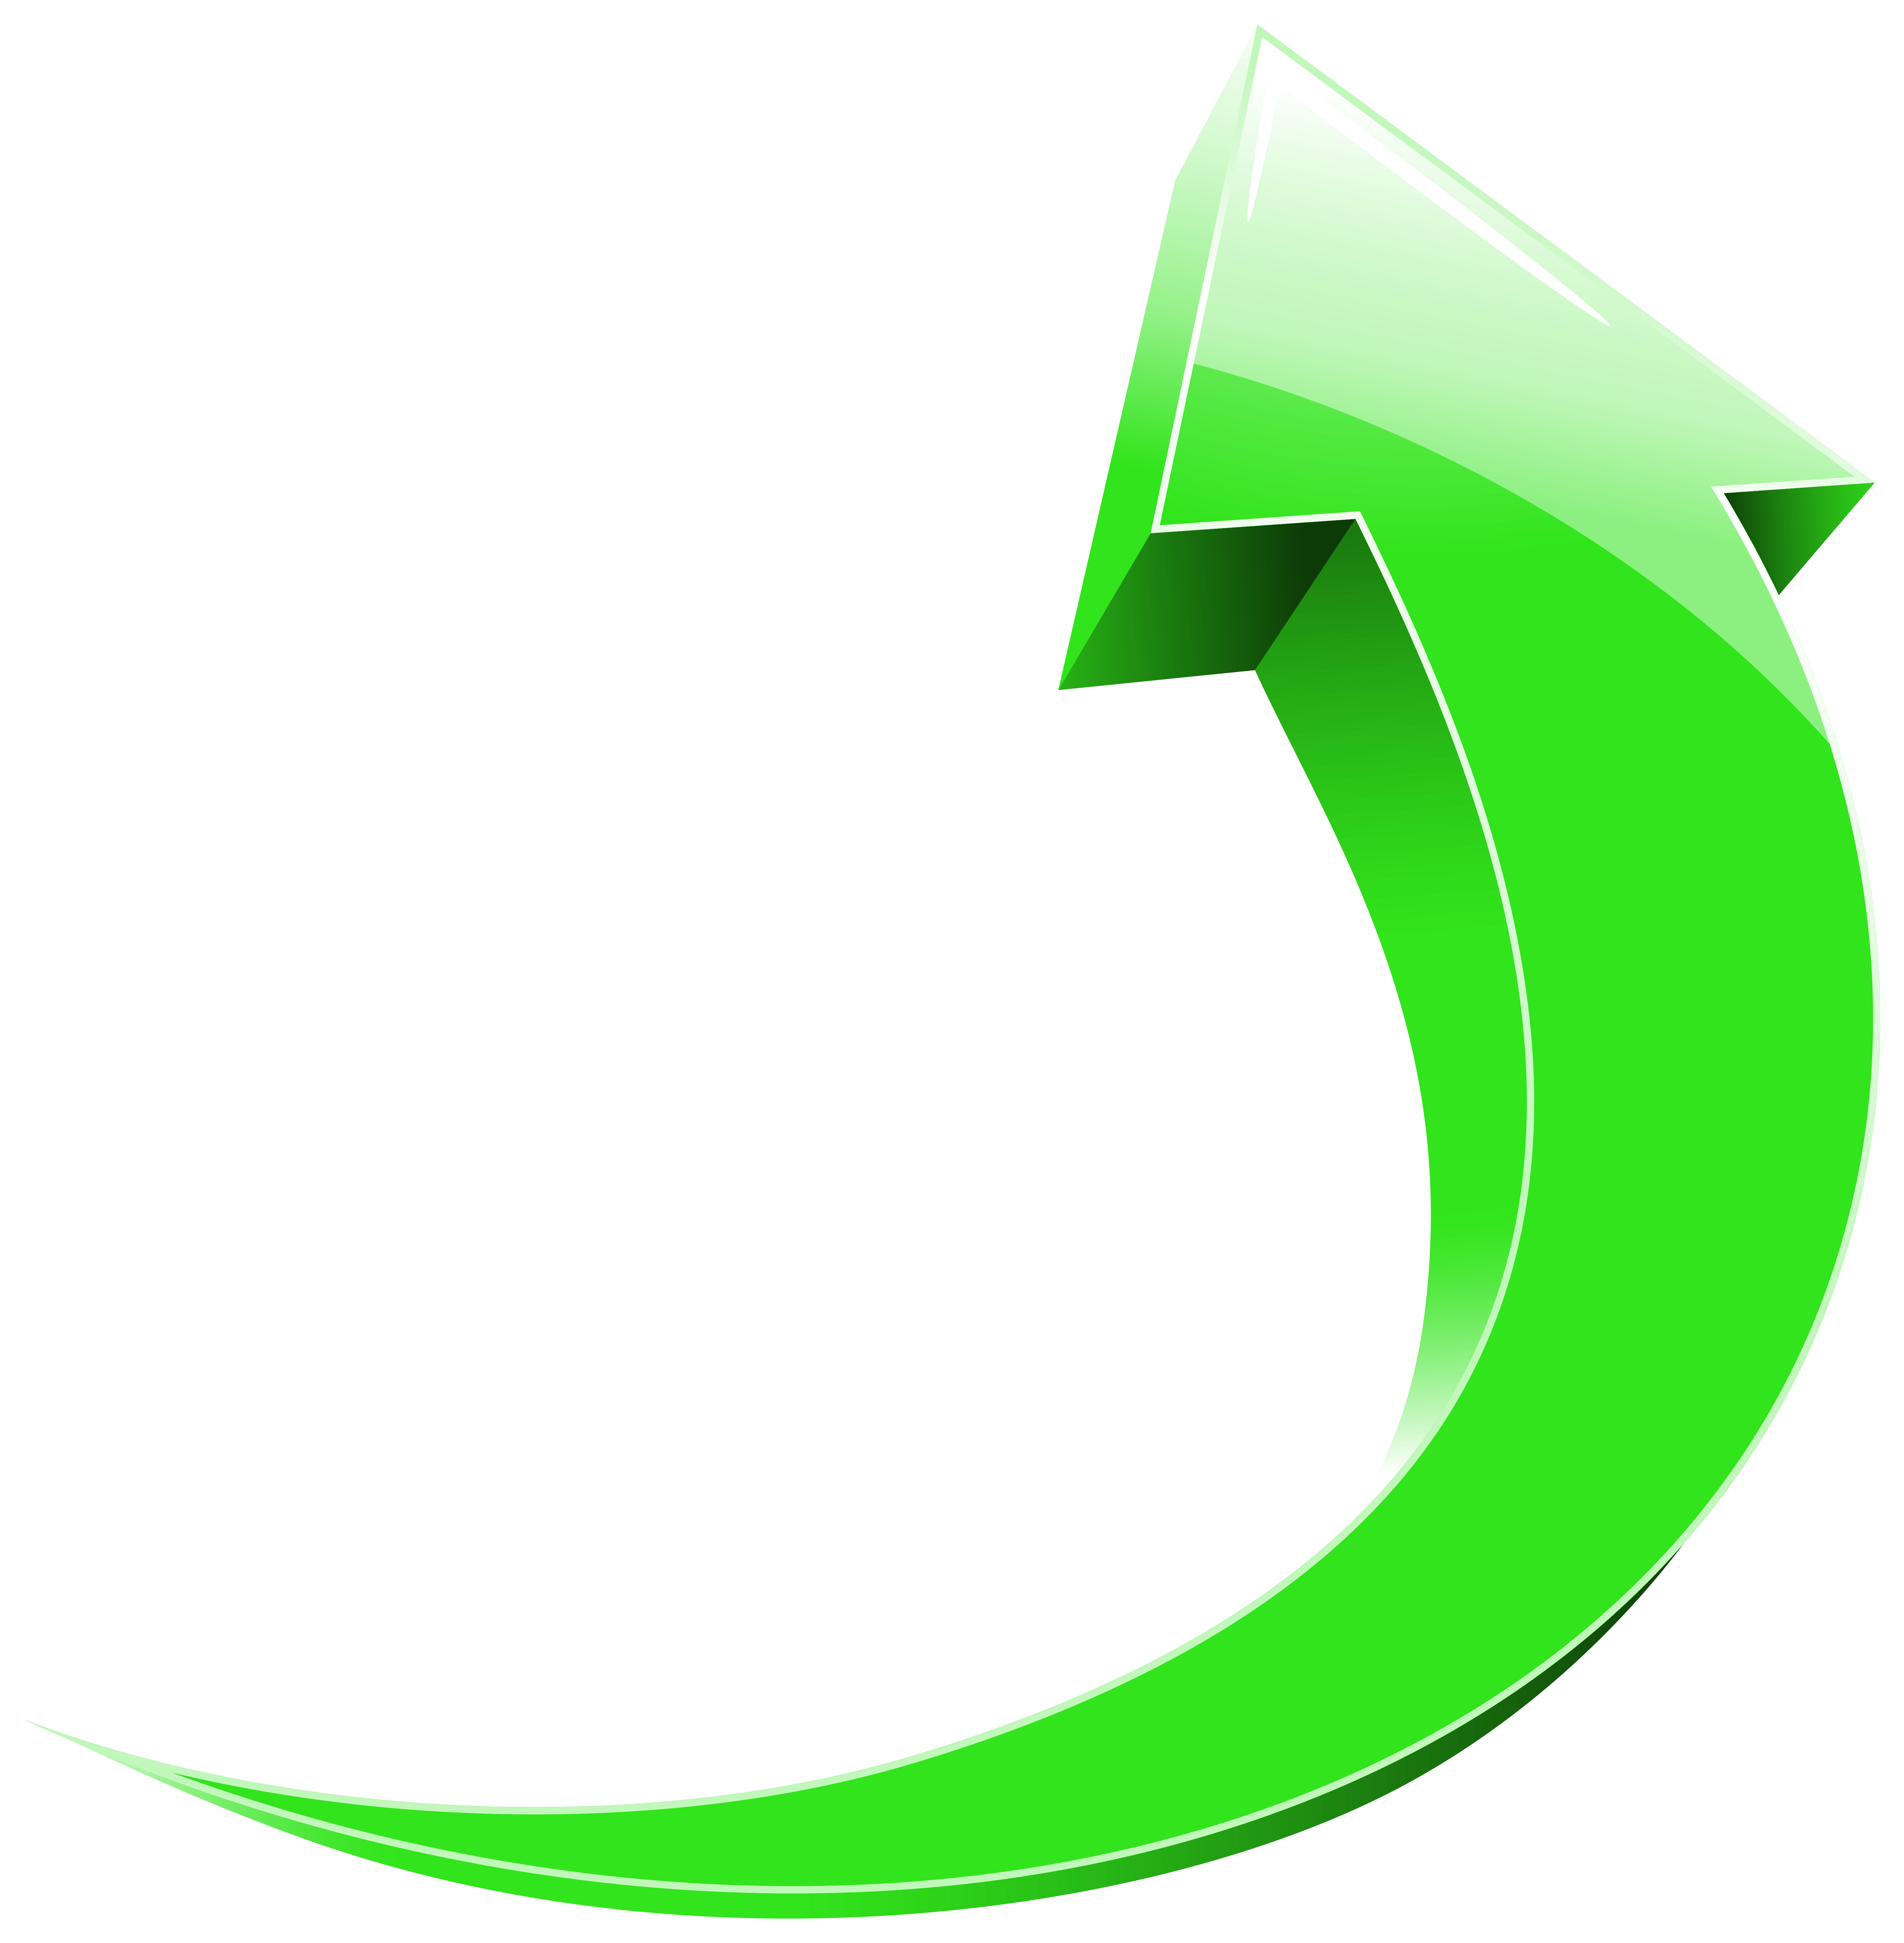 image free stock Up green transparent png. Wavy arrow clipart